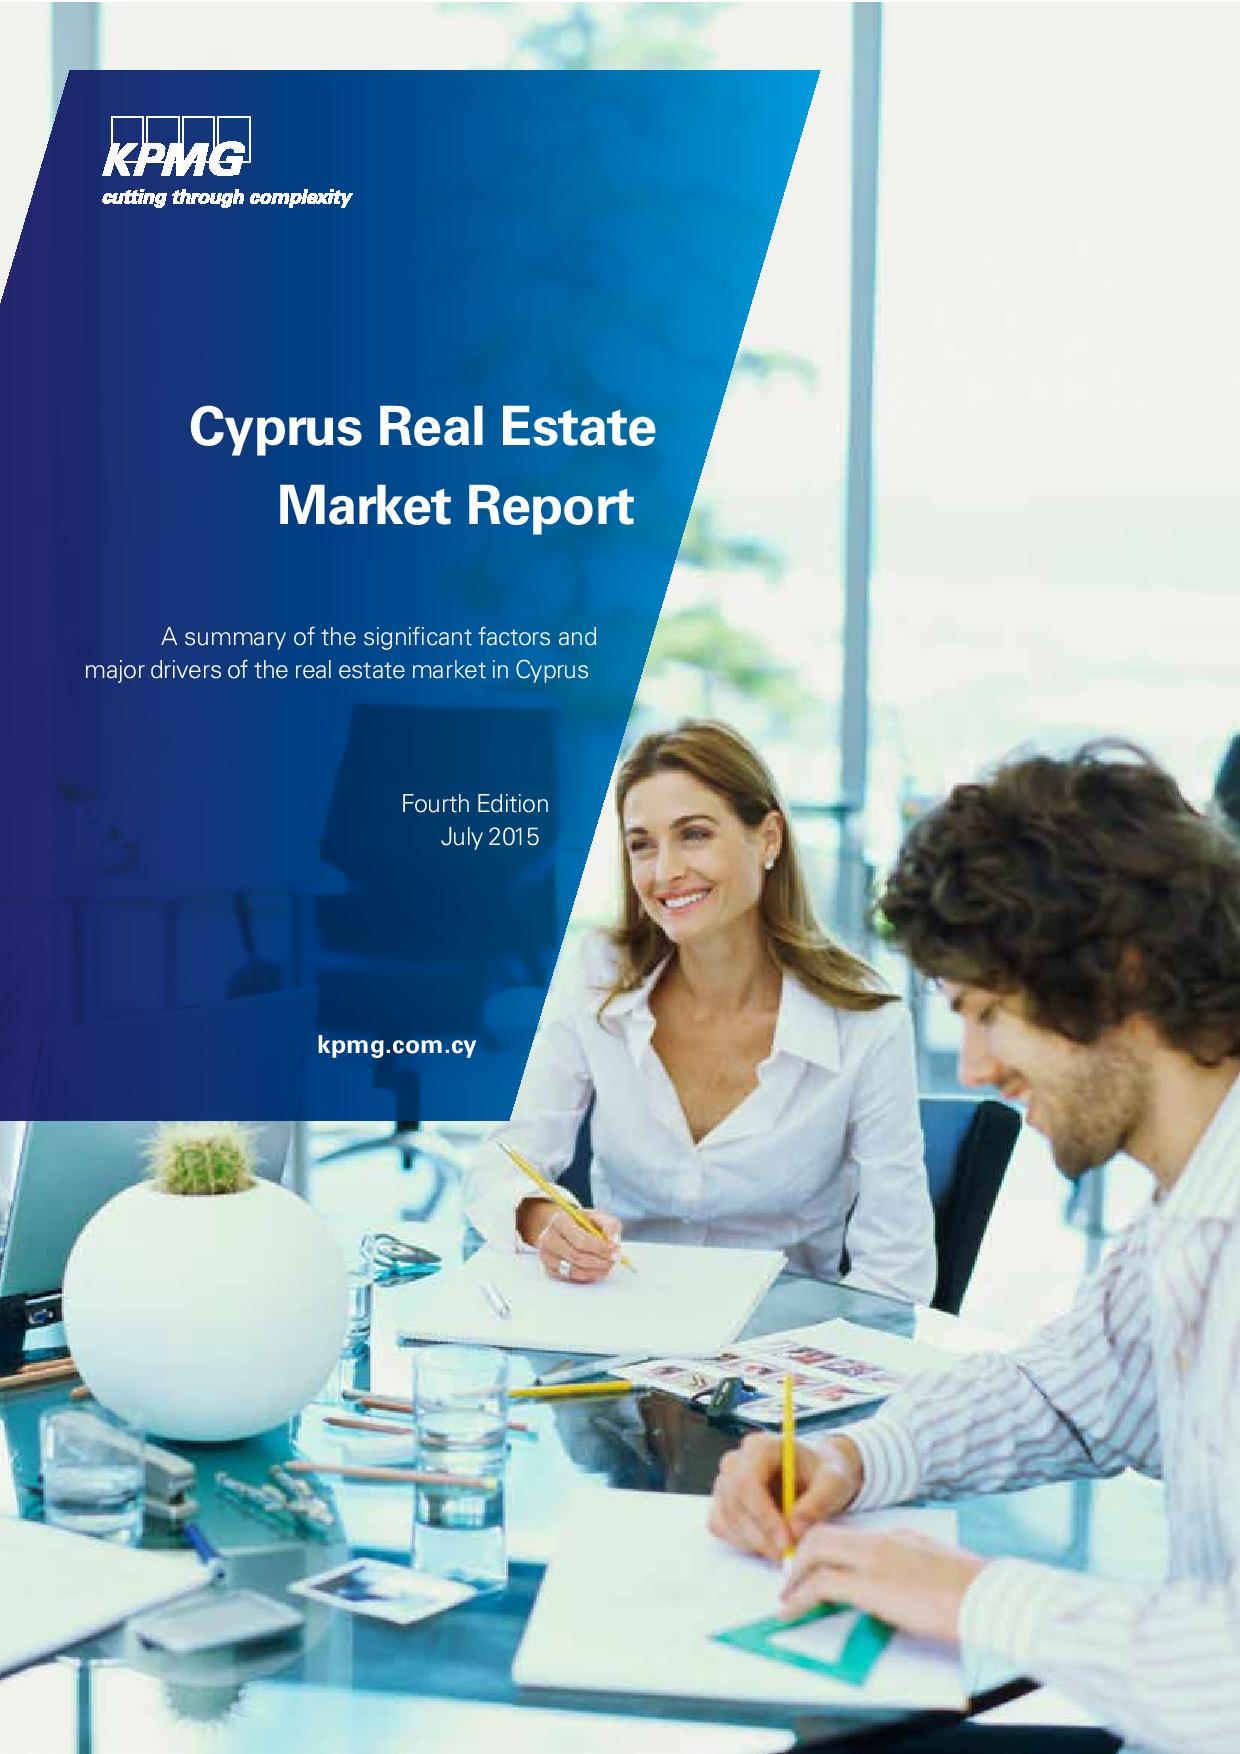 Cyprus Real Estate Market Report